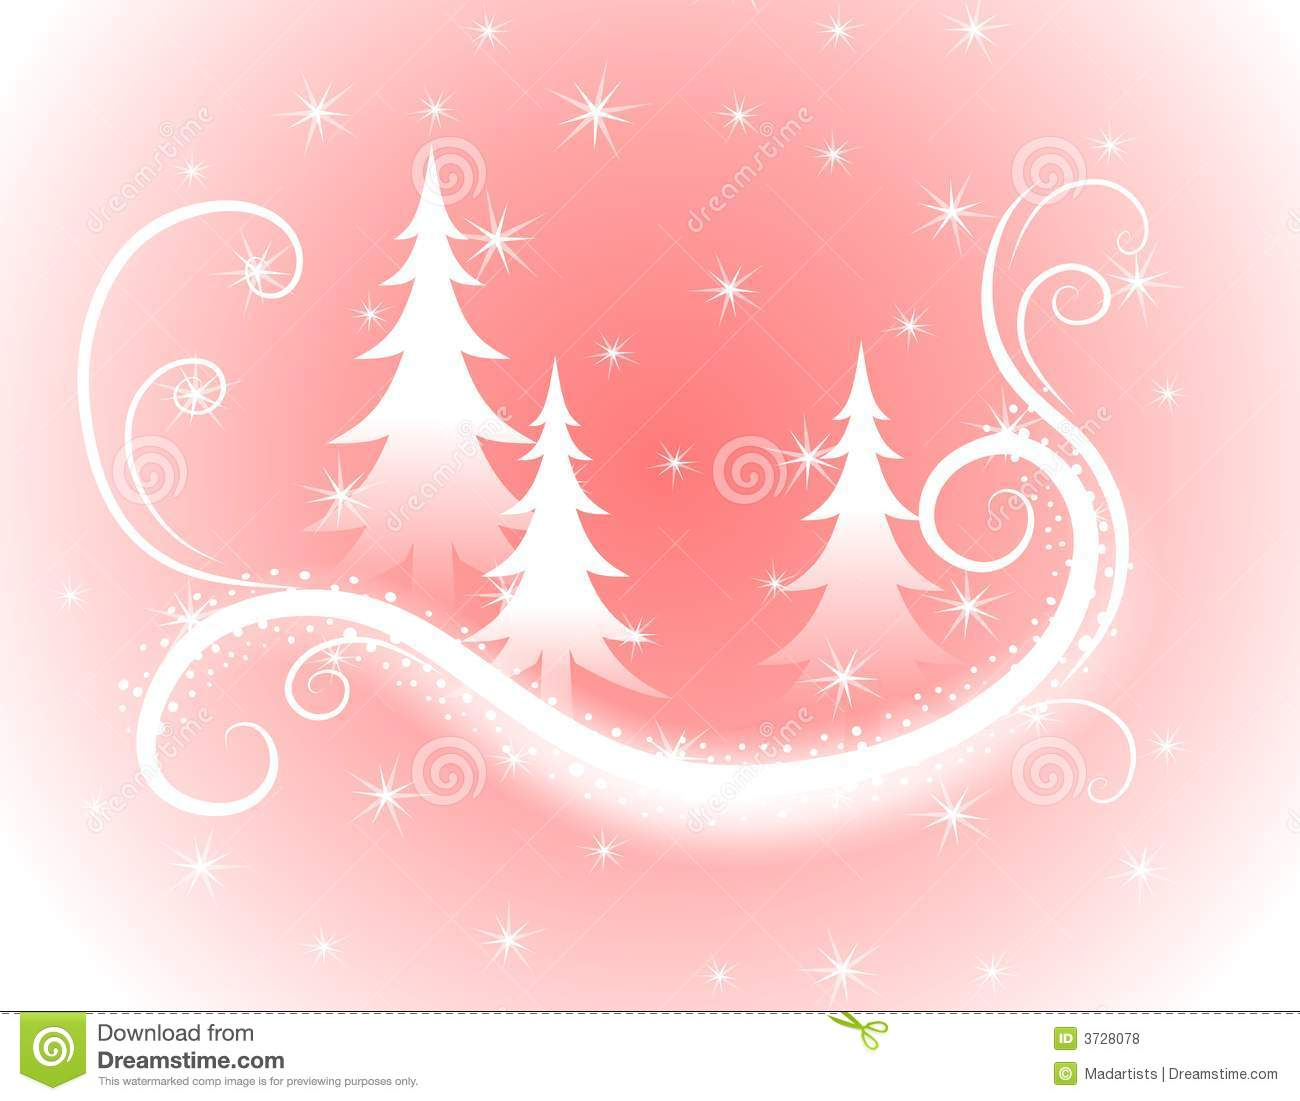 background christmas decorative gradient pink silhouette snowflakes swirling trees - Pink Christmas Trees